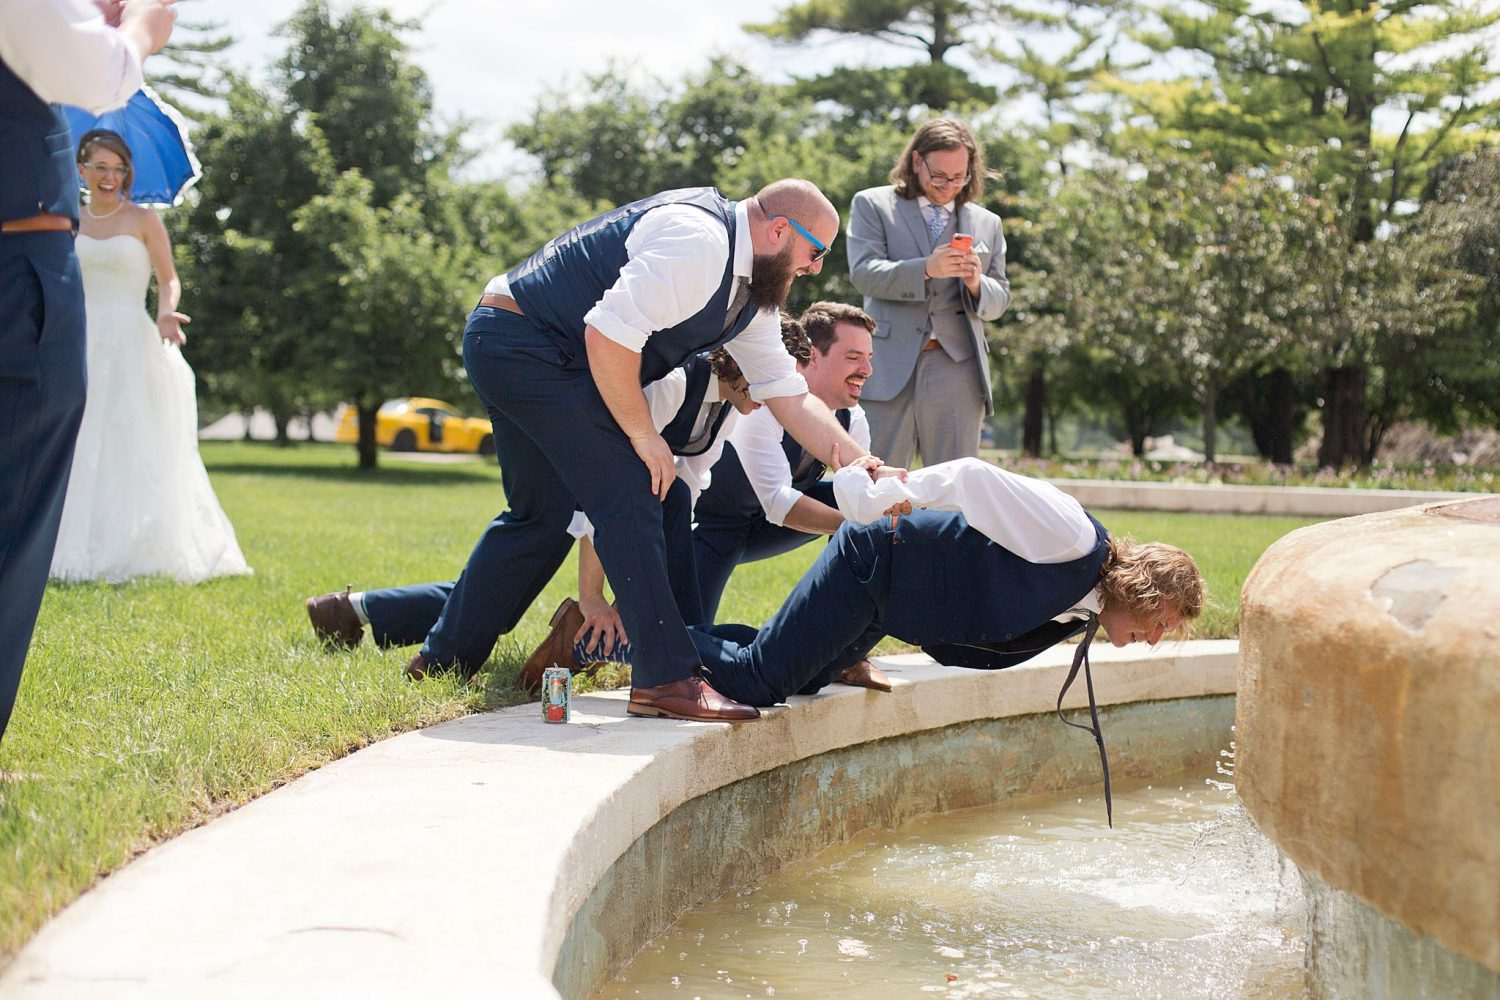 The bridal party cools off in a fountain at Des Moines Waterworks Park.